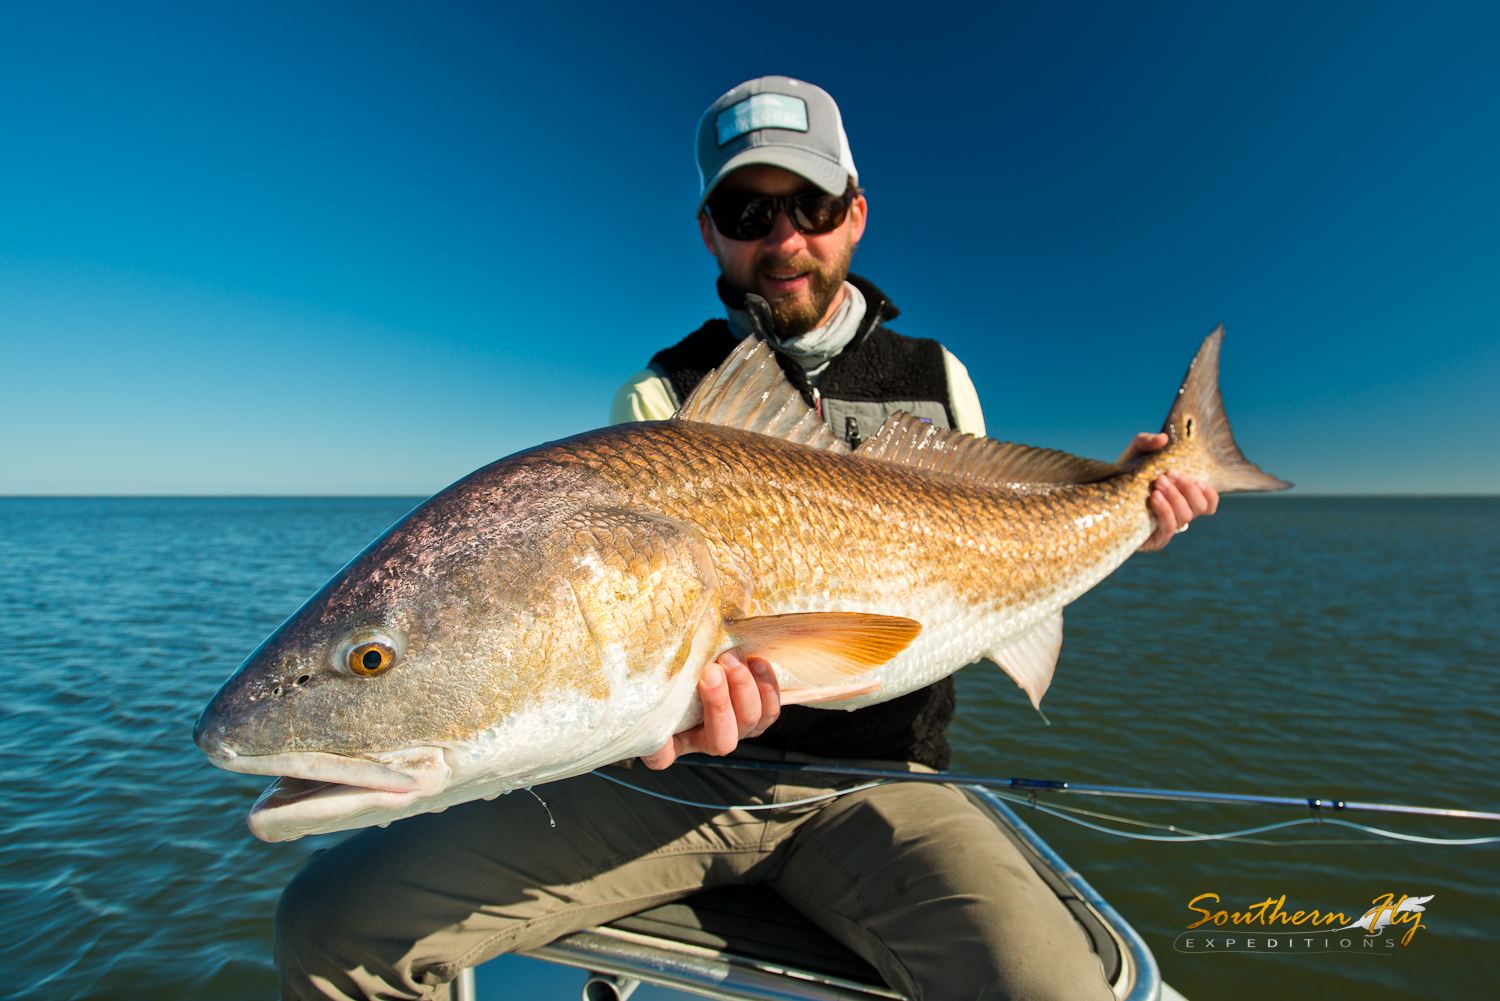 Fly Fishing Charter in the New Orleans area with Southern Fly Expeditions